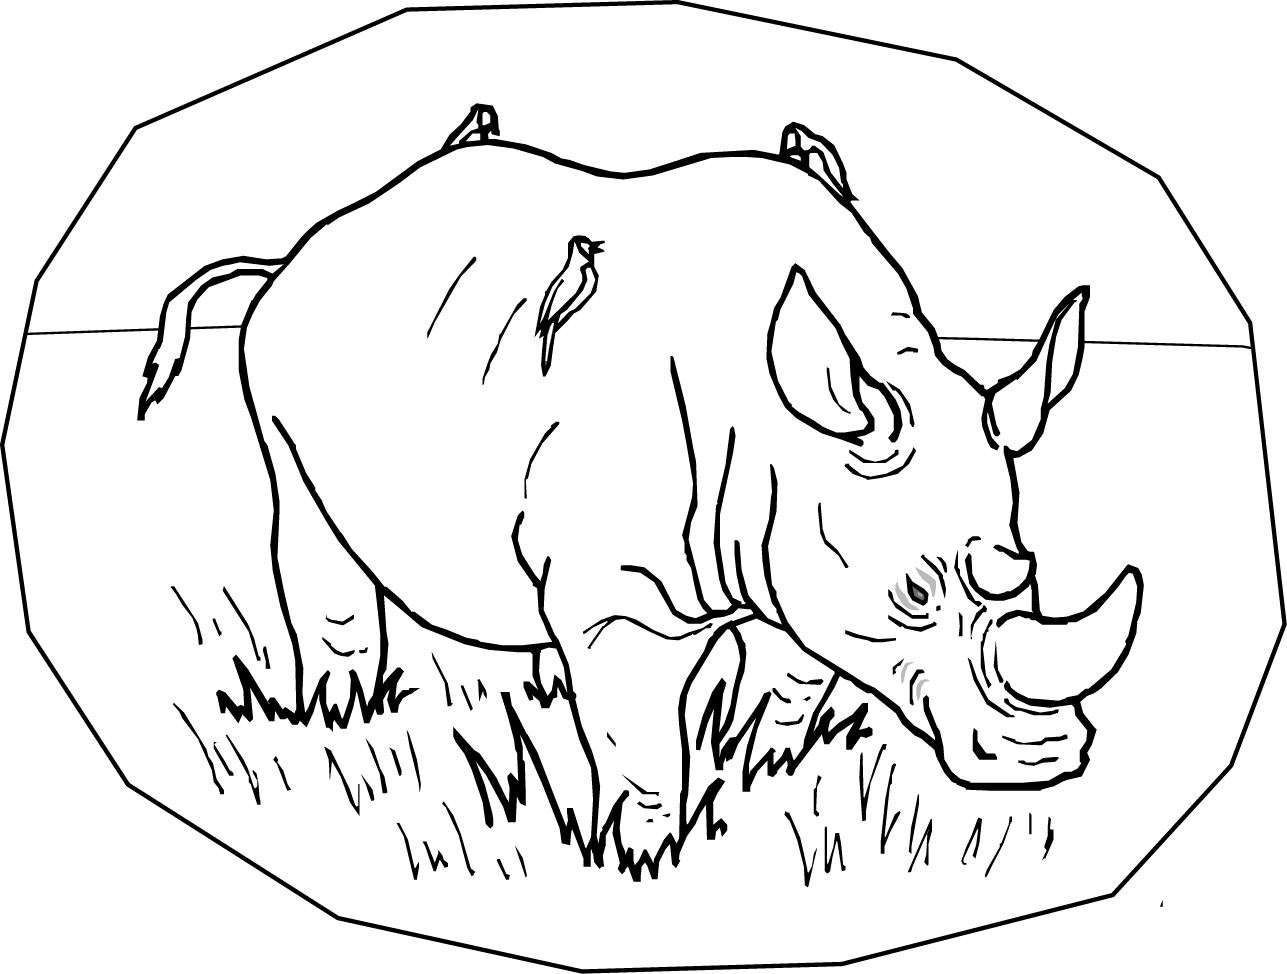 rhino coloring pages free printable rhinoceros coloring pages for kids pages coloring rhino